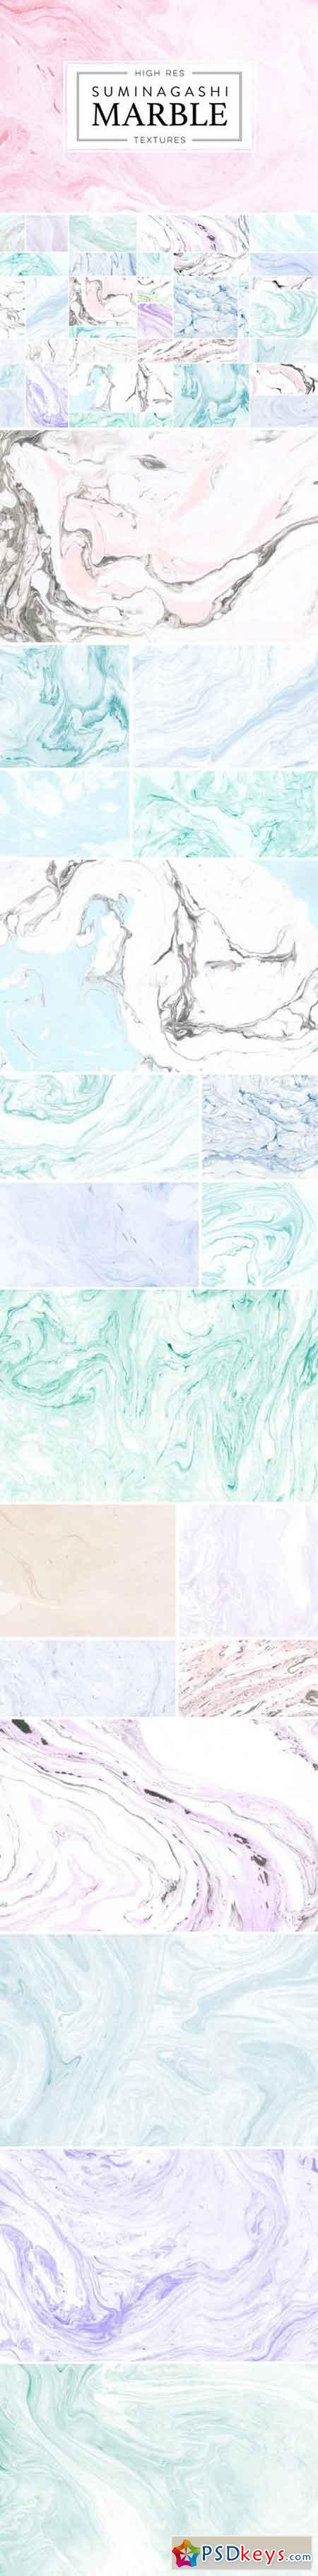 Marble Paper Textures 3 2322123